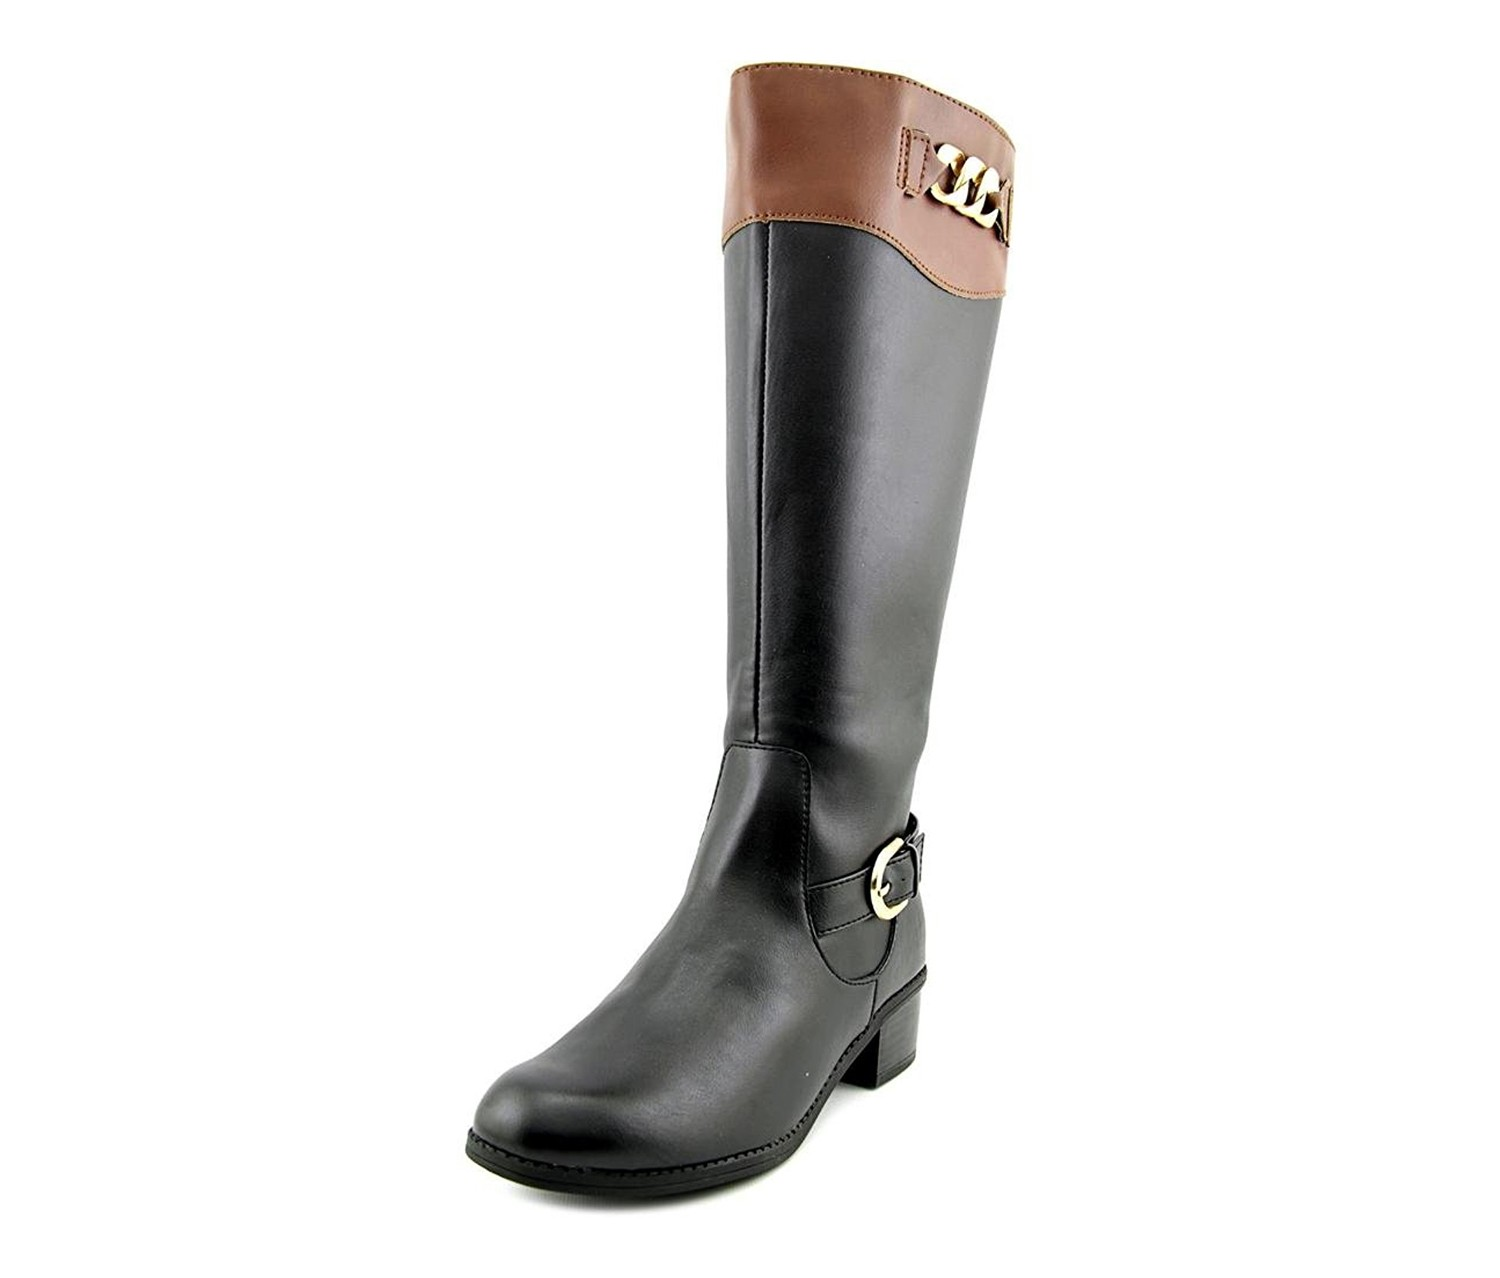 darlaa wide calf knee high boot brands